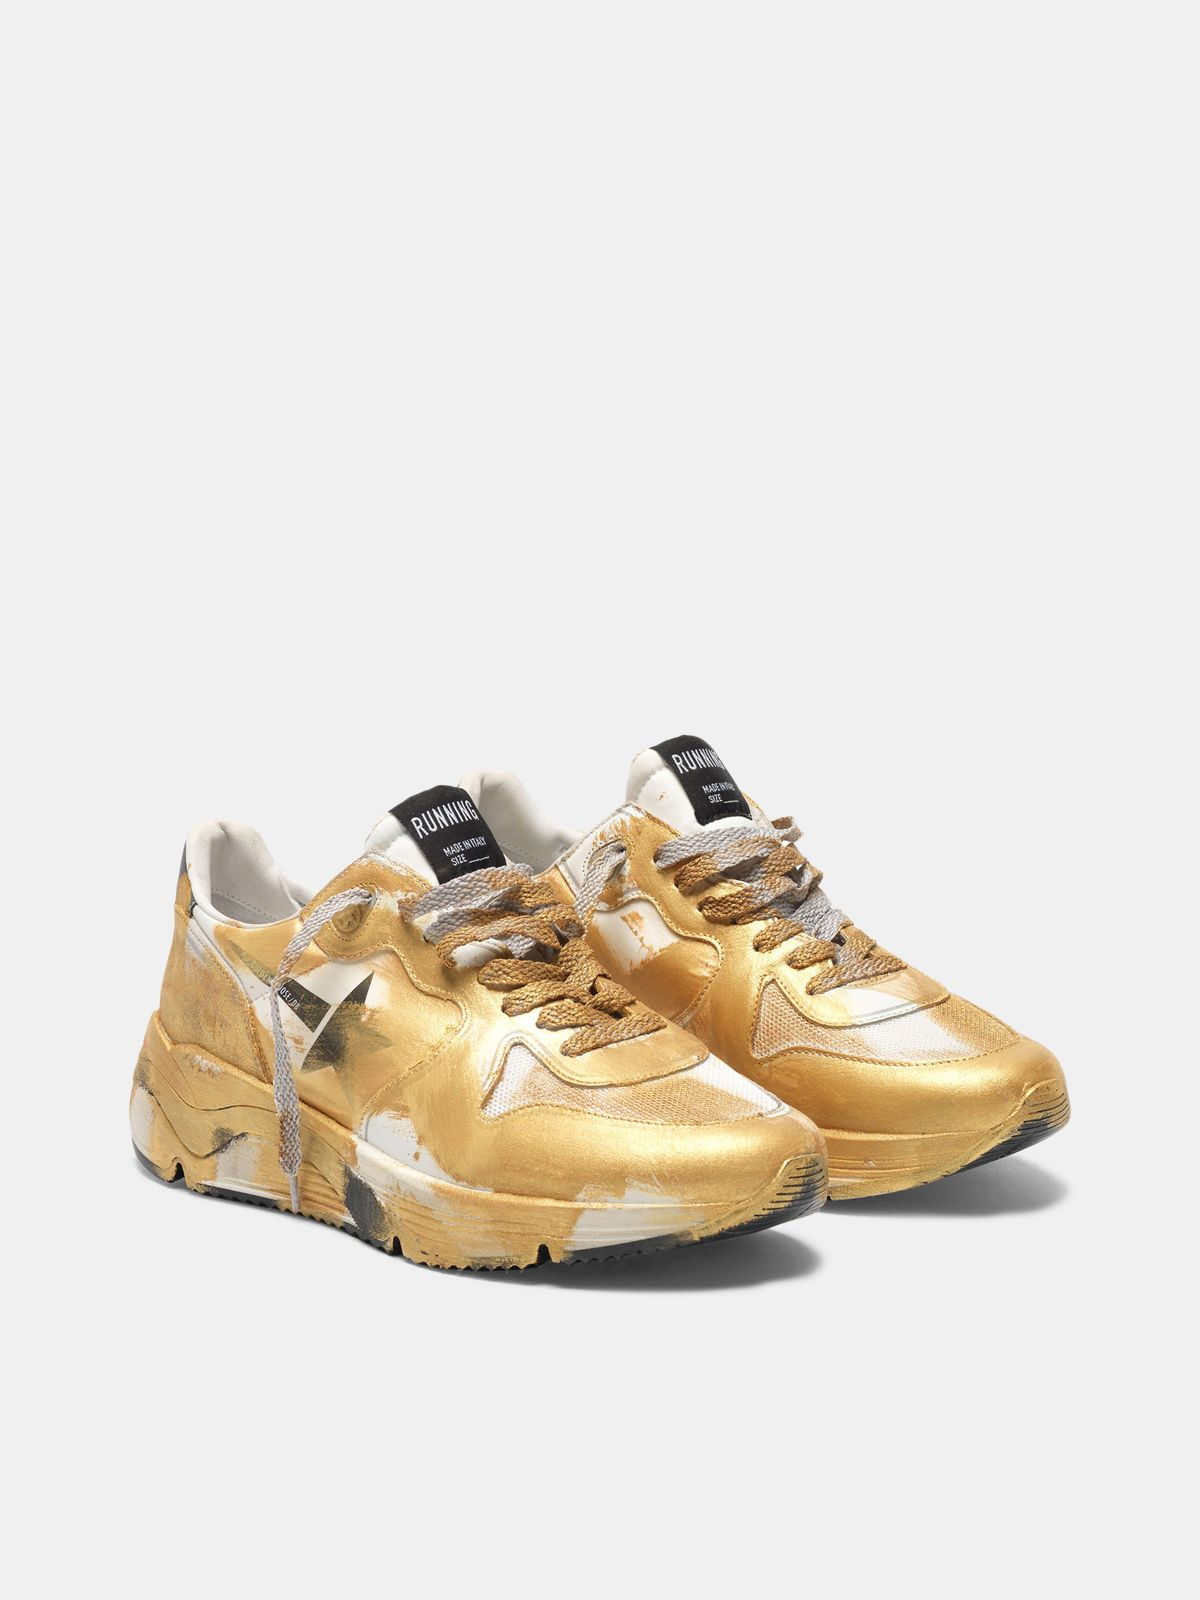 Golden Goose - Running Sole sneakers with gold varnish   in